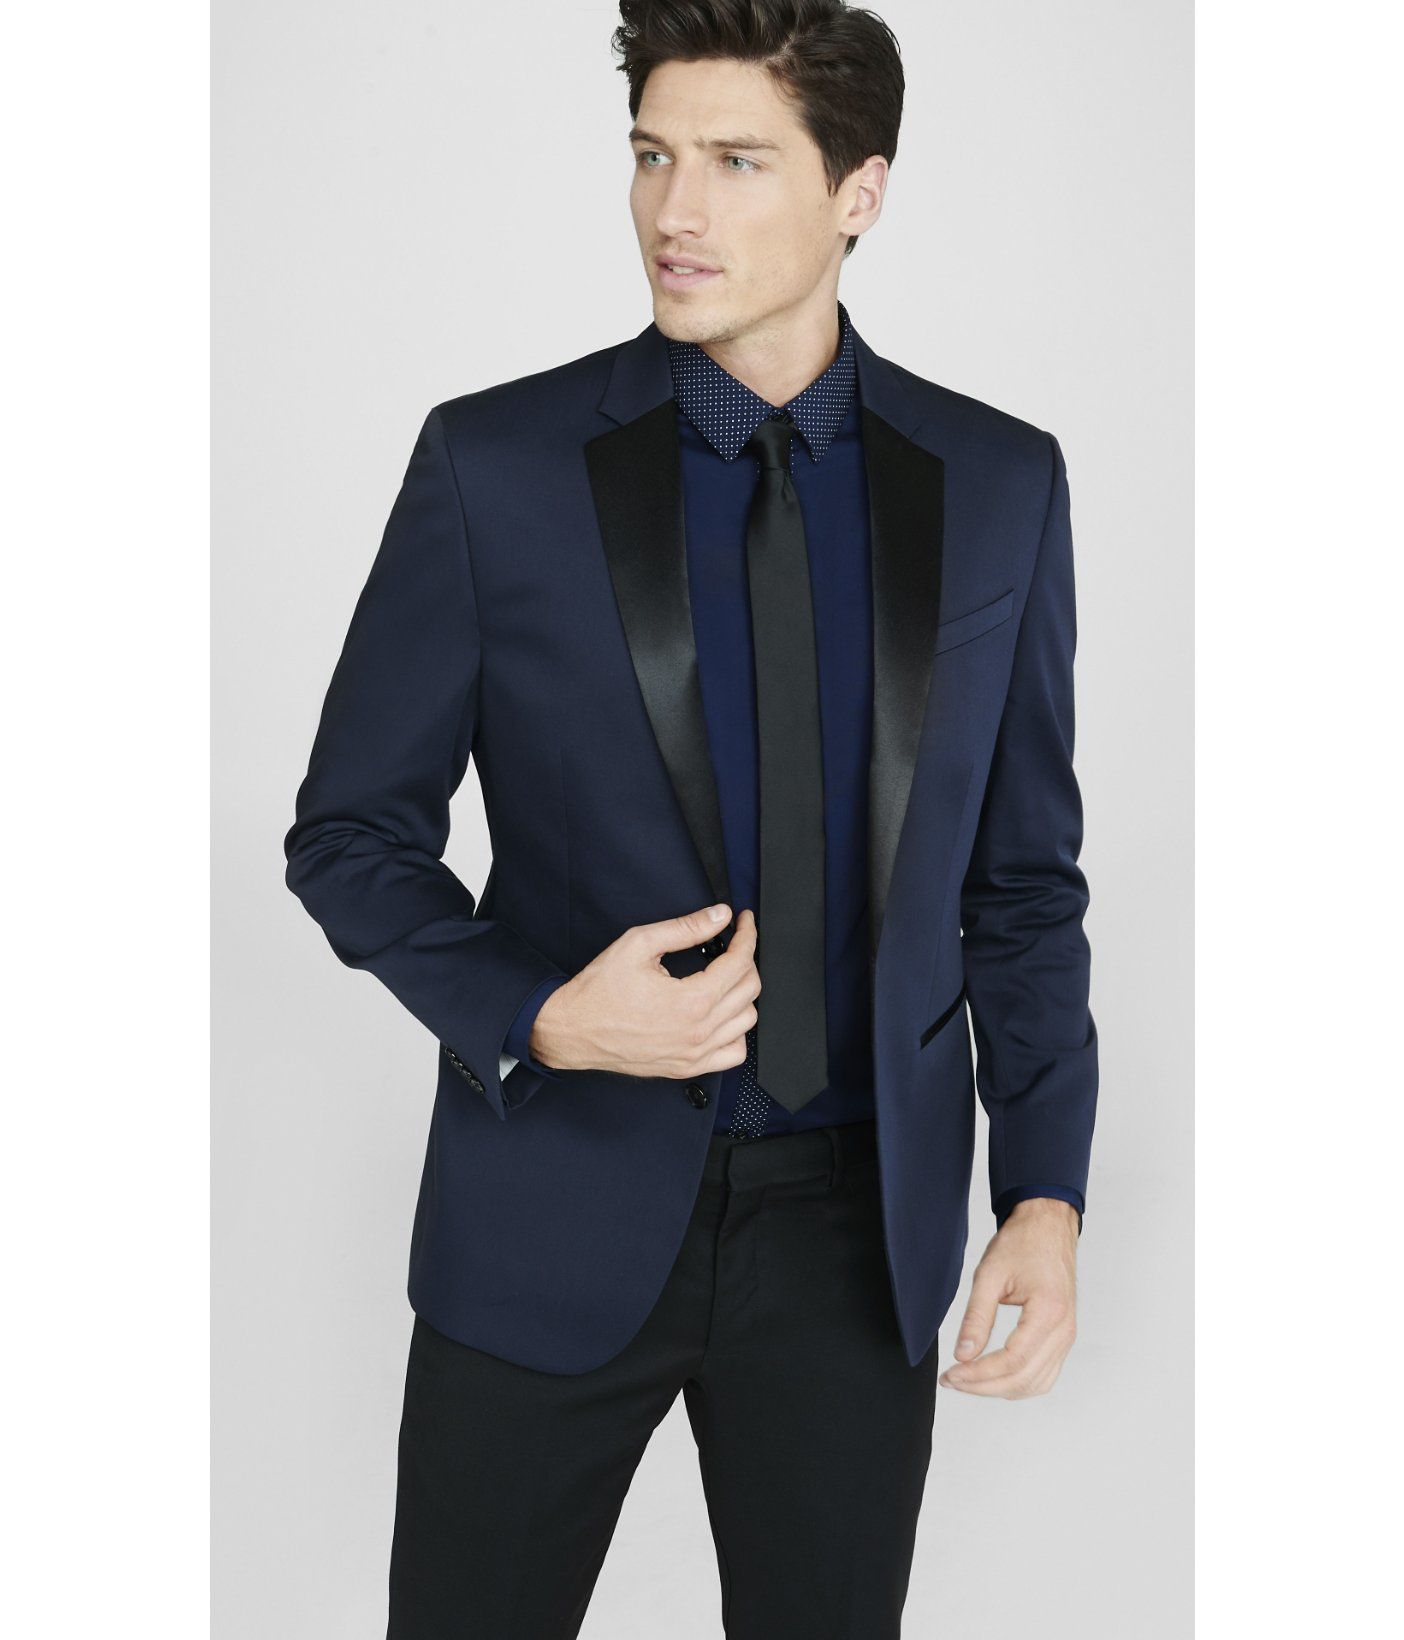 navy blue and black tuxedo google search matthew